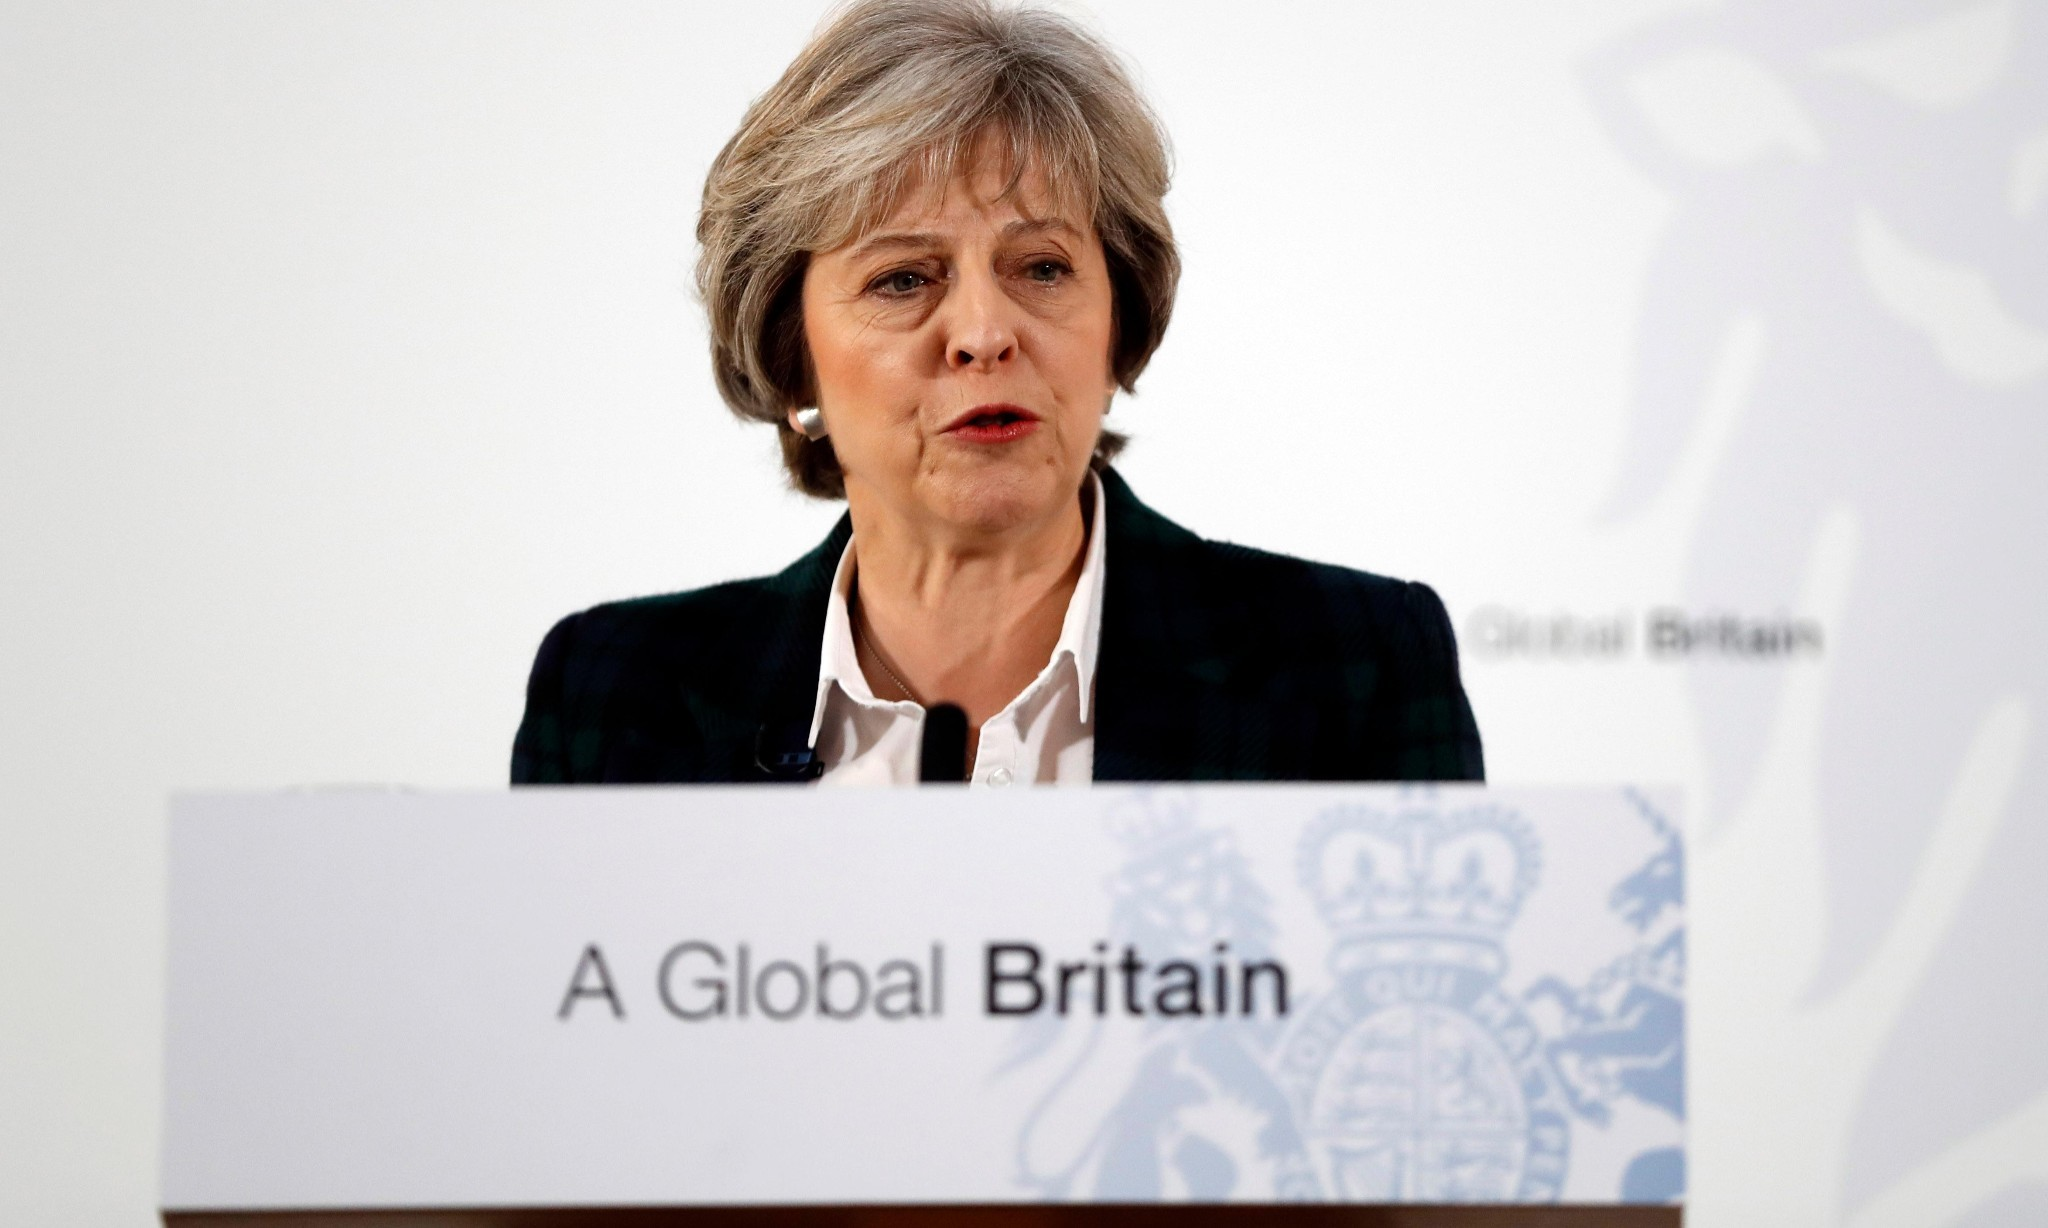 EU citizens in the UK: what did you make of May's Brexit speech?